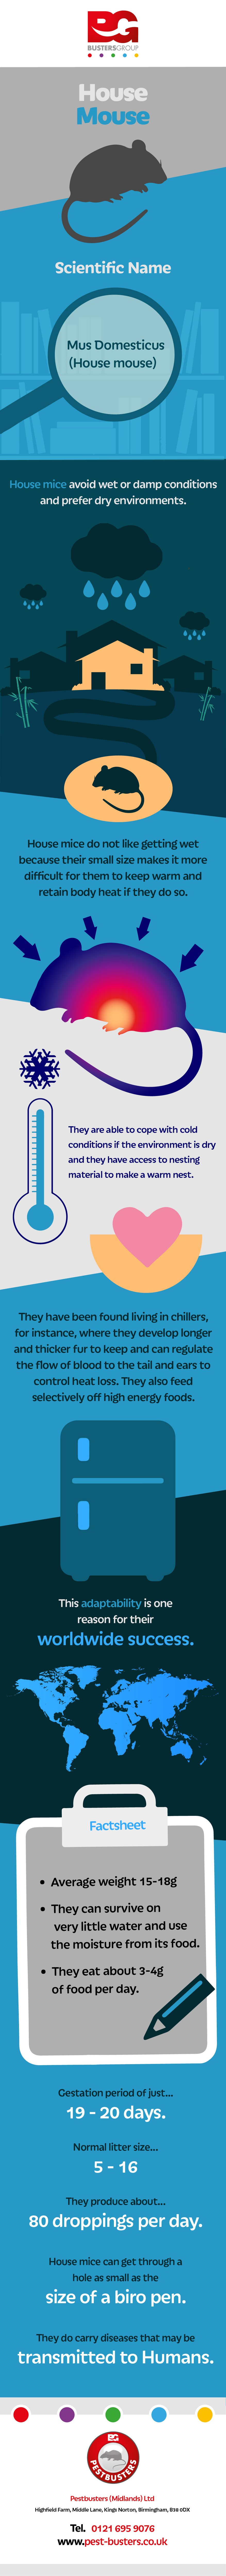 Common-House-Mouse-Facts-InfoGraphic-Pest-Busters